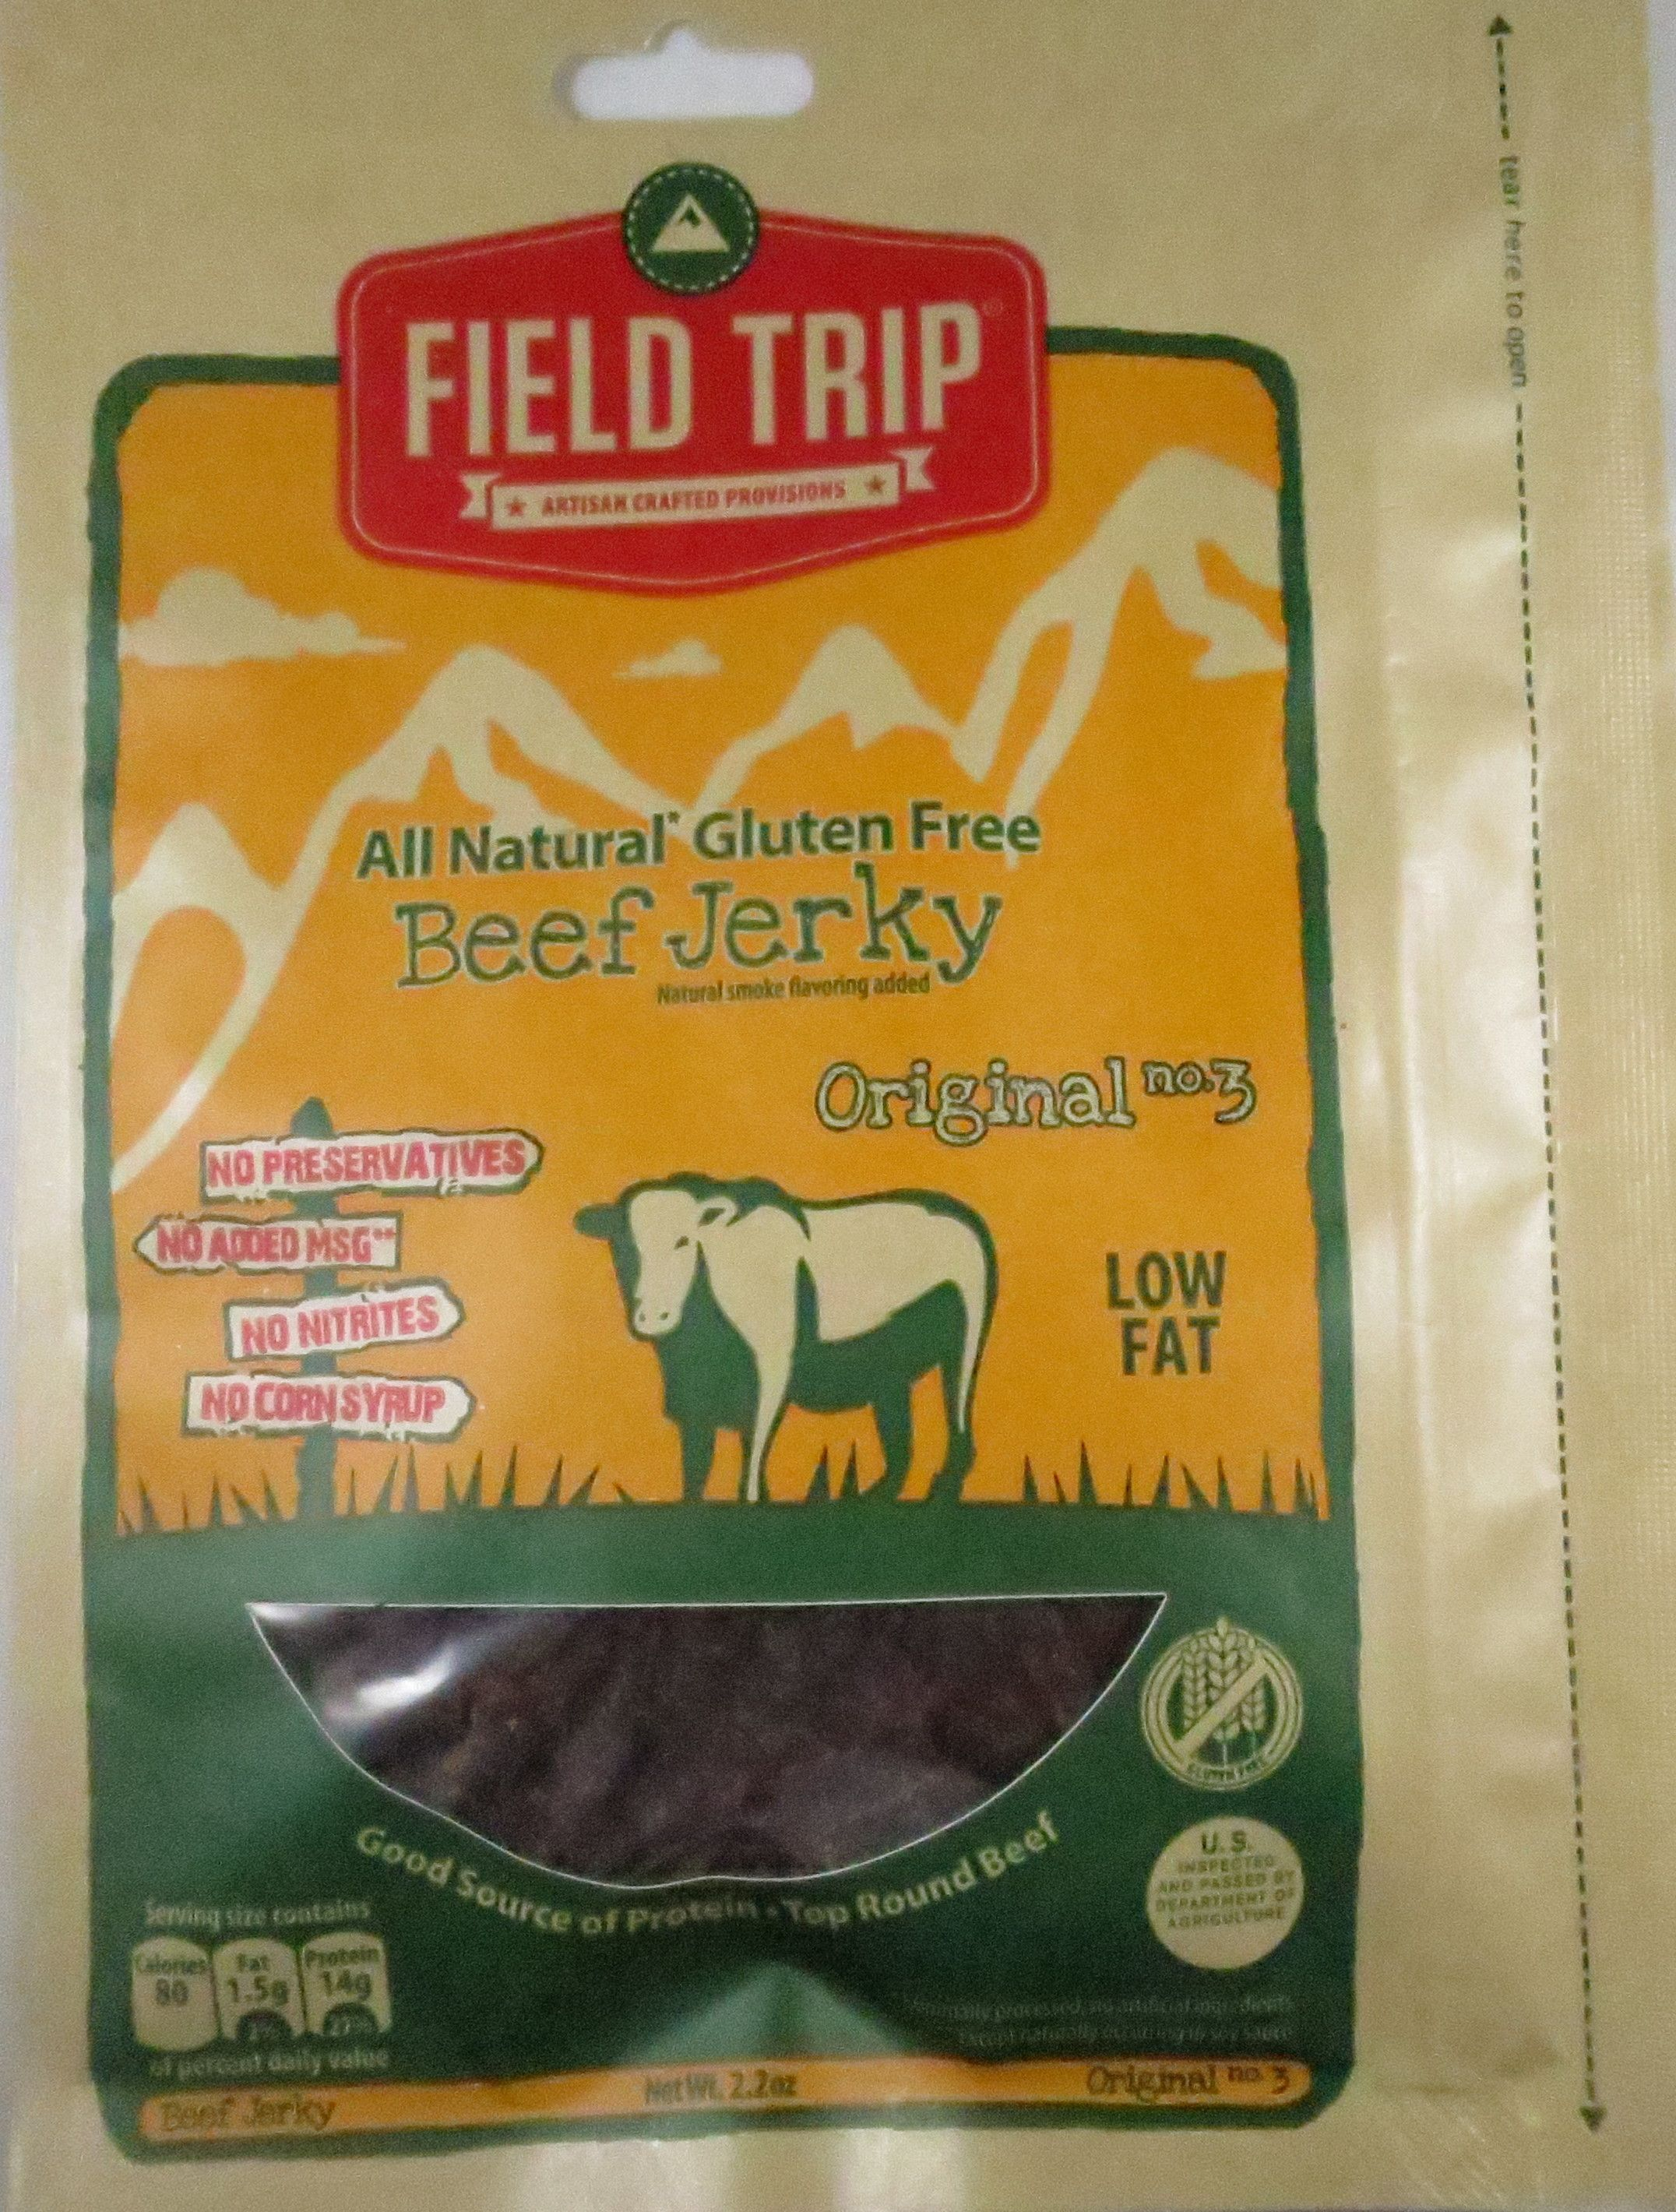 Discover How Field Trip Fared In A Review On Their Original No 3 Beef Jerky Flavor Http Jerkyingredients Com 2015 09 Beef Jerky Jerky Gluten Free Beef Jerky